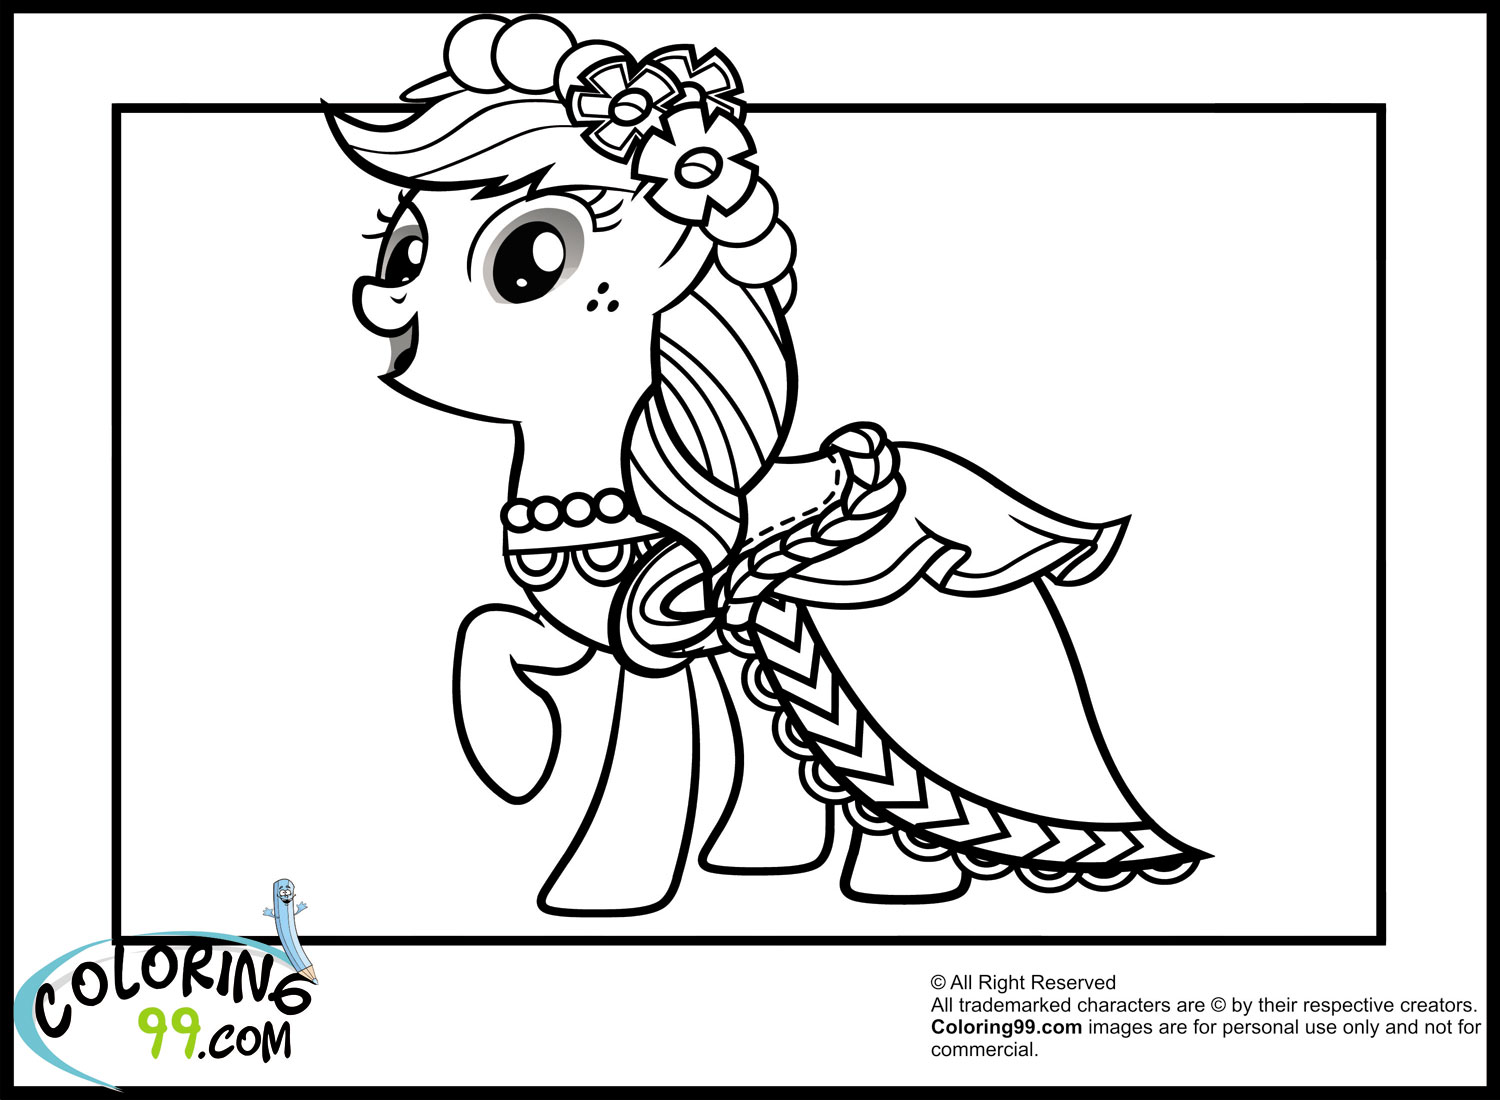 coloring pages : My Little Pony Photos Unique Ausmalbilder Pony My ... | 1100x1500